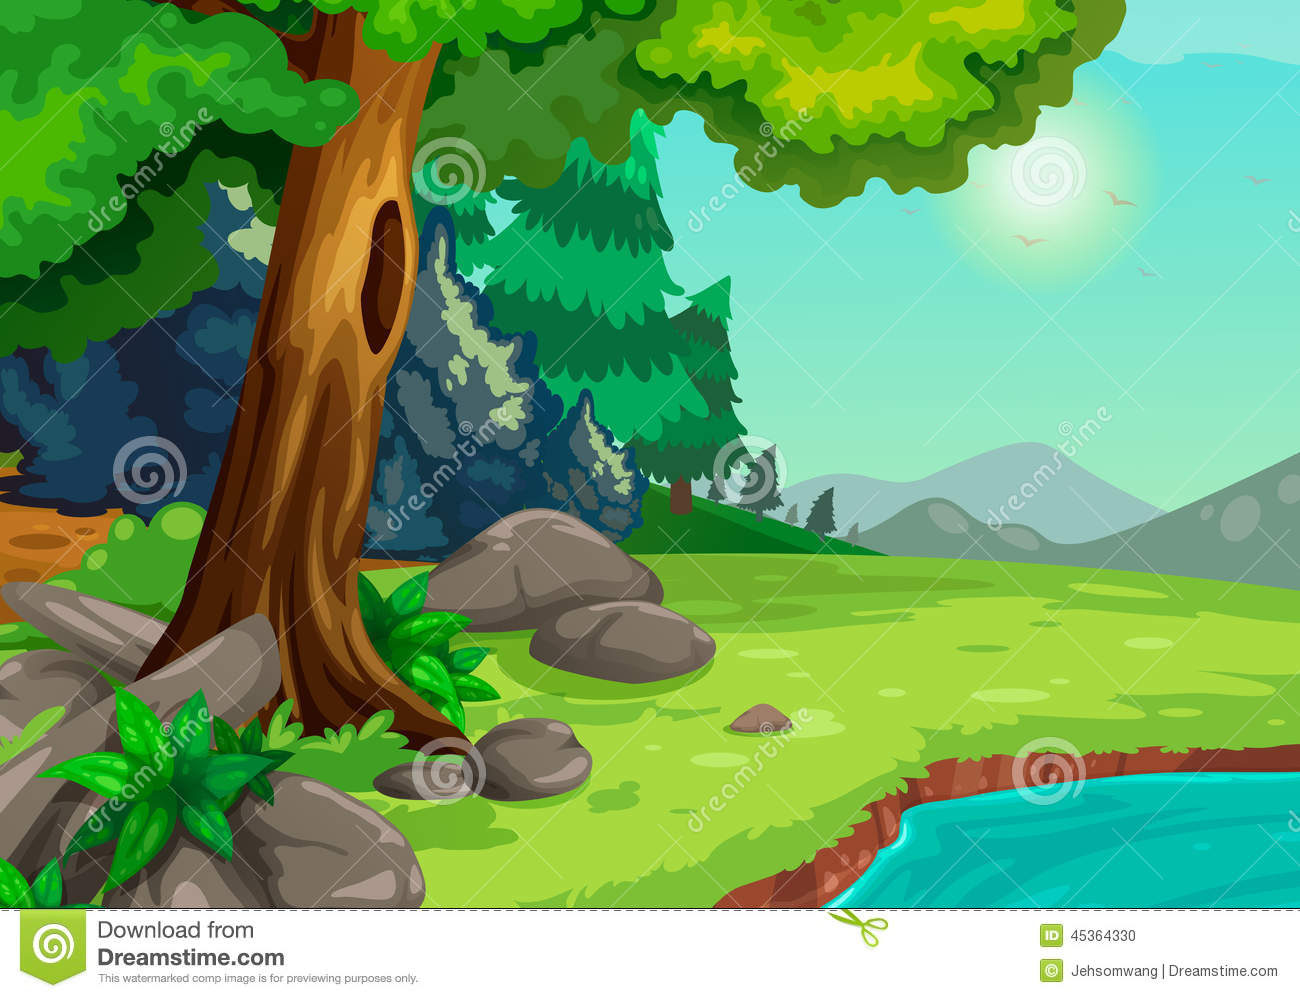 Background clipart forest. Station